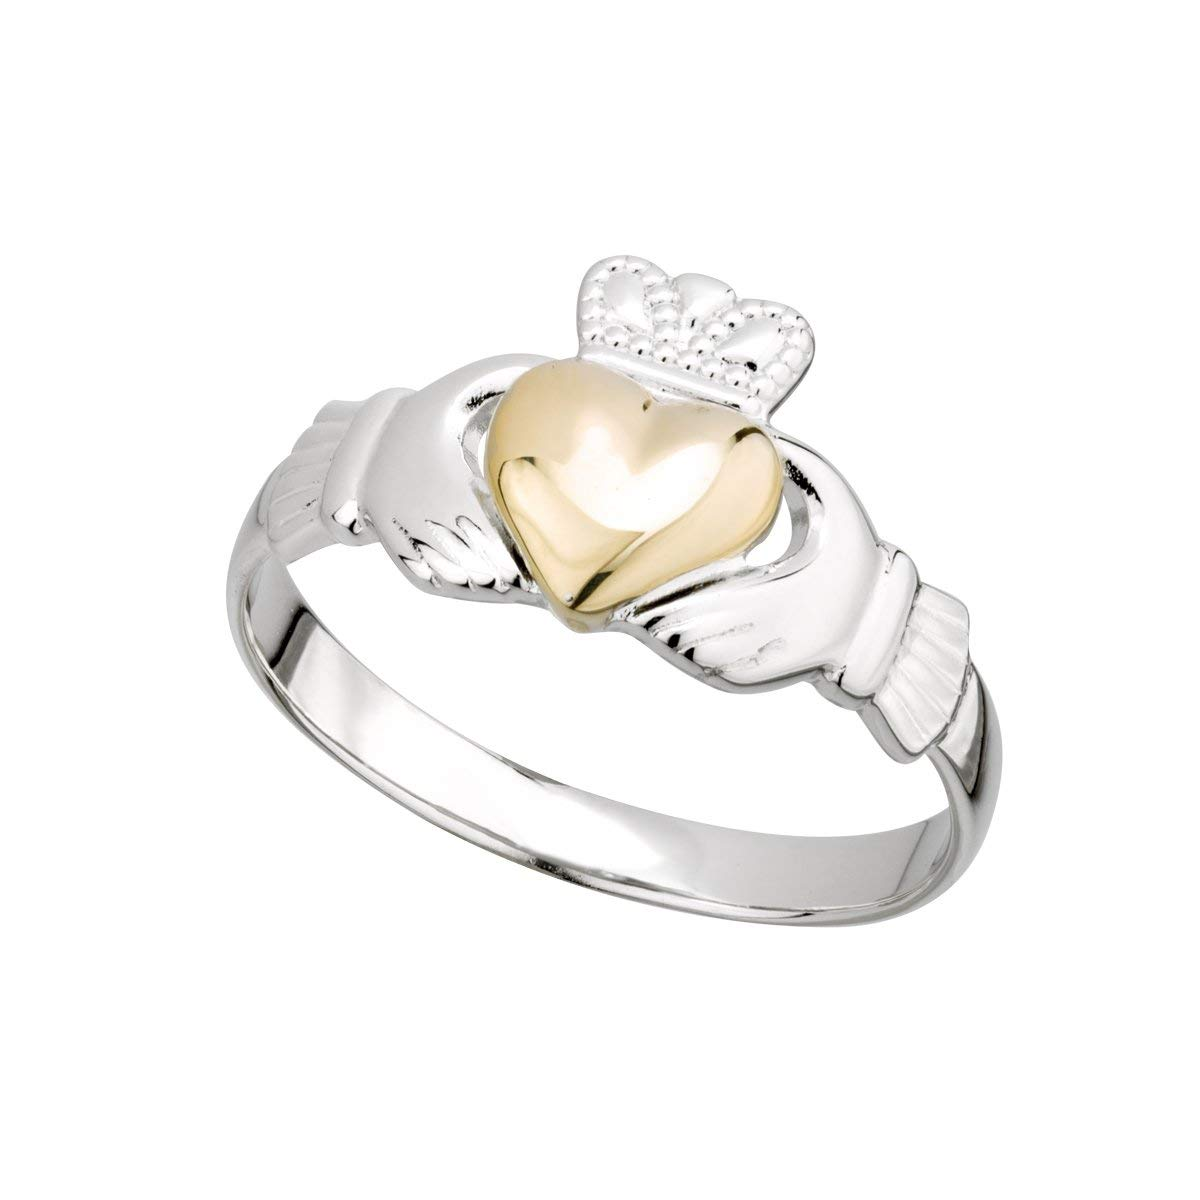 10k Gold Claddagh Ring Women's Irish Sterling Silver Band Made in Ireland Sz 8